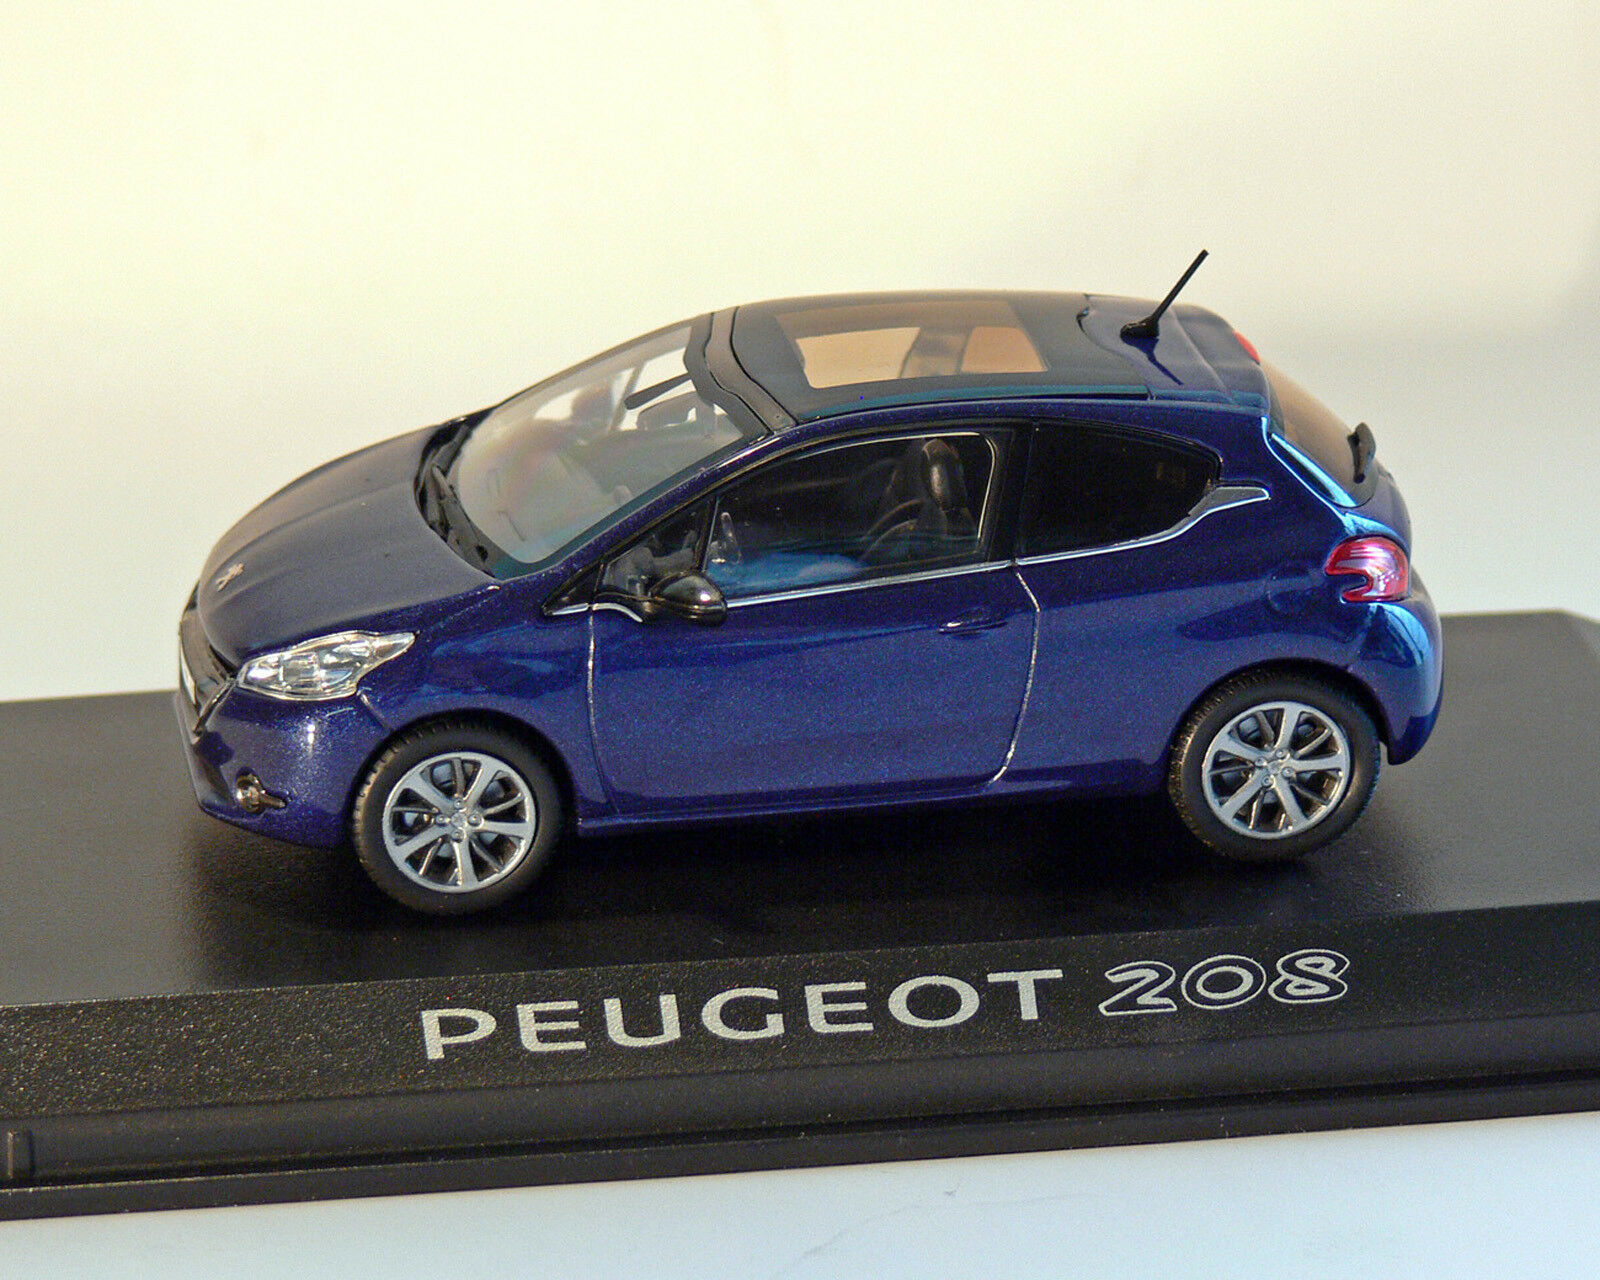 Peugeot 208 blau-Metallic, blau-Metallic, blau-Metallic, 1 43, NOREV  | Quality First